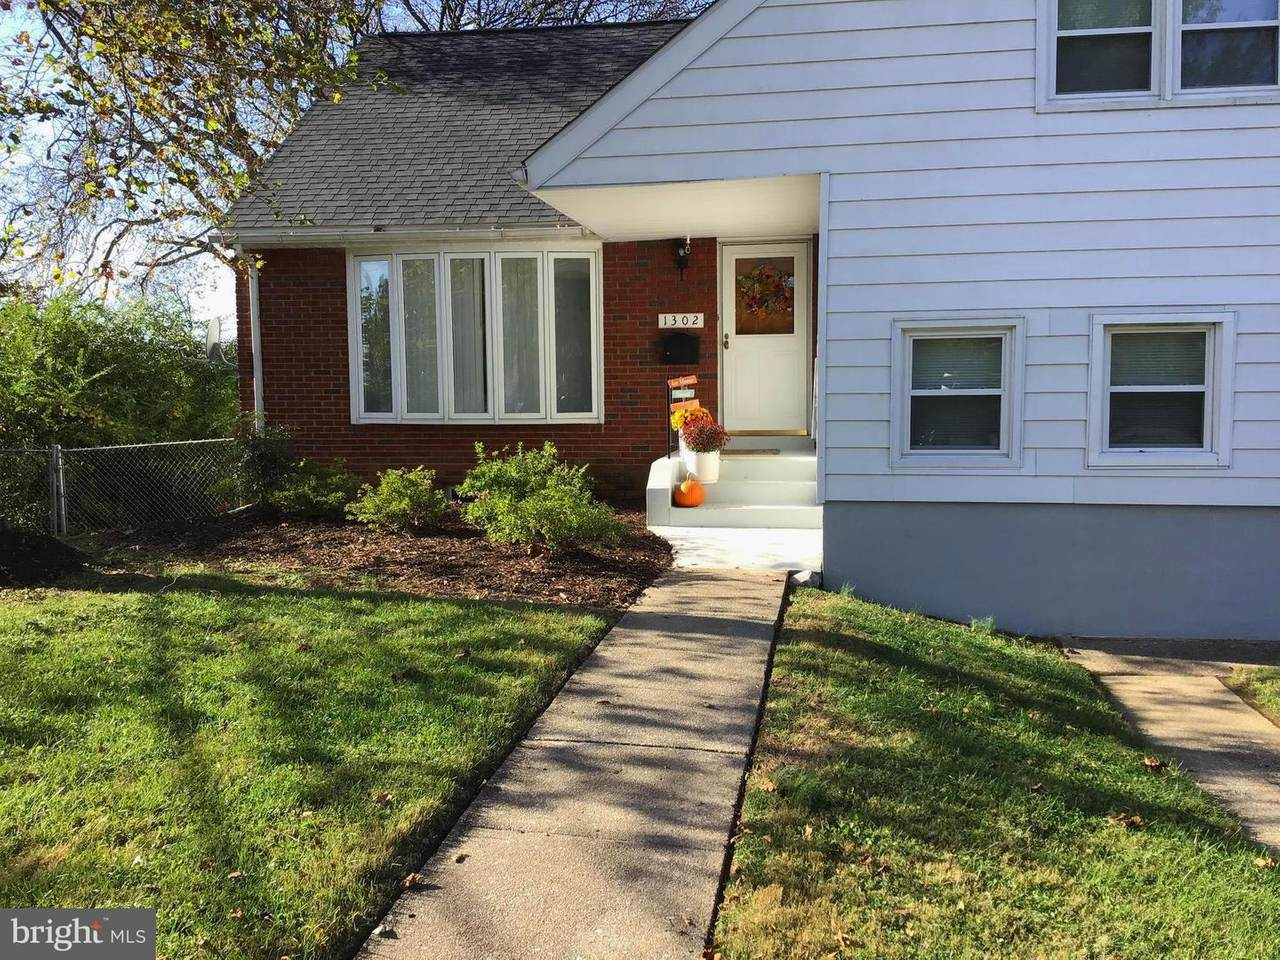 1302 Burleigh Road - Photo 1